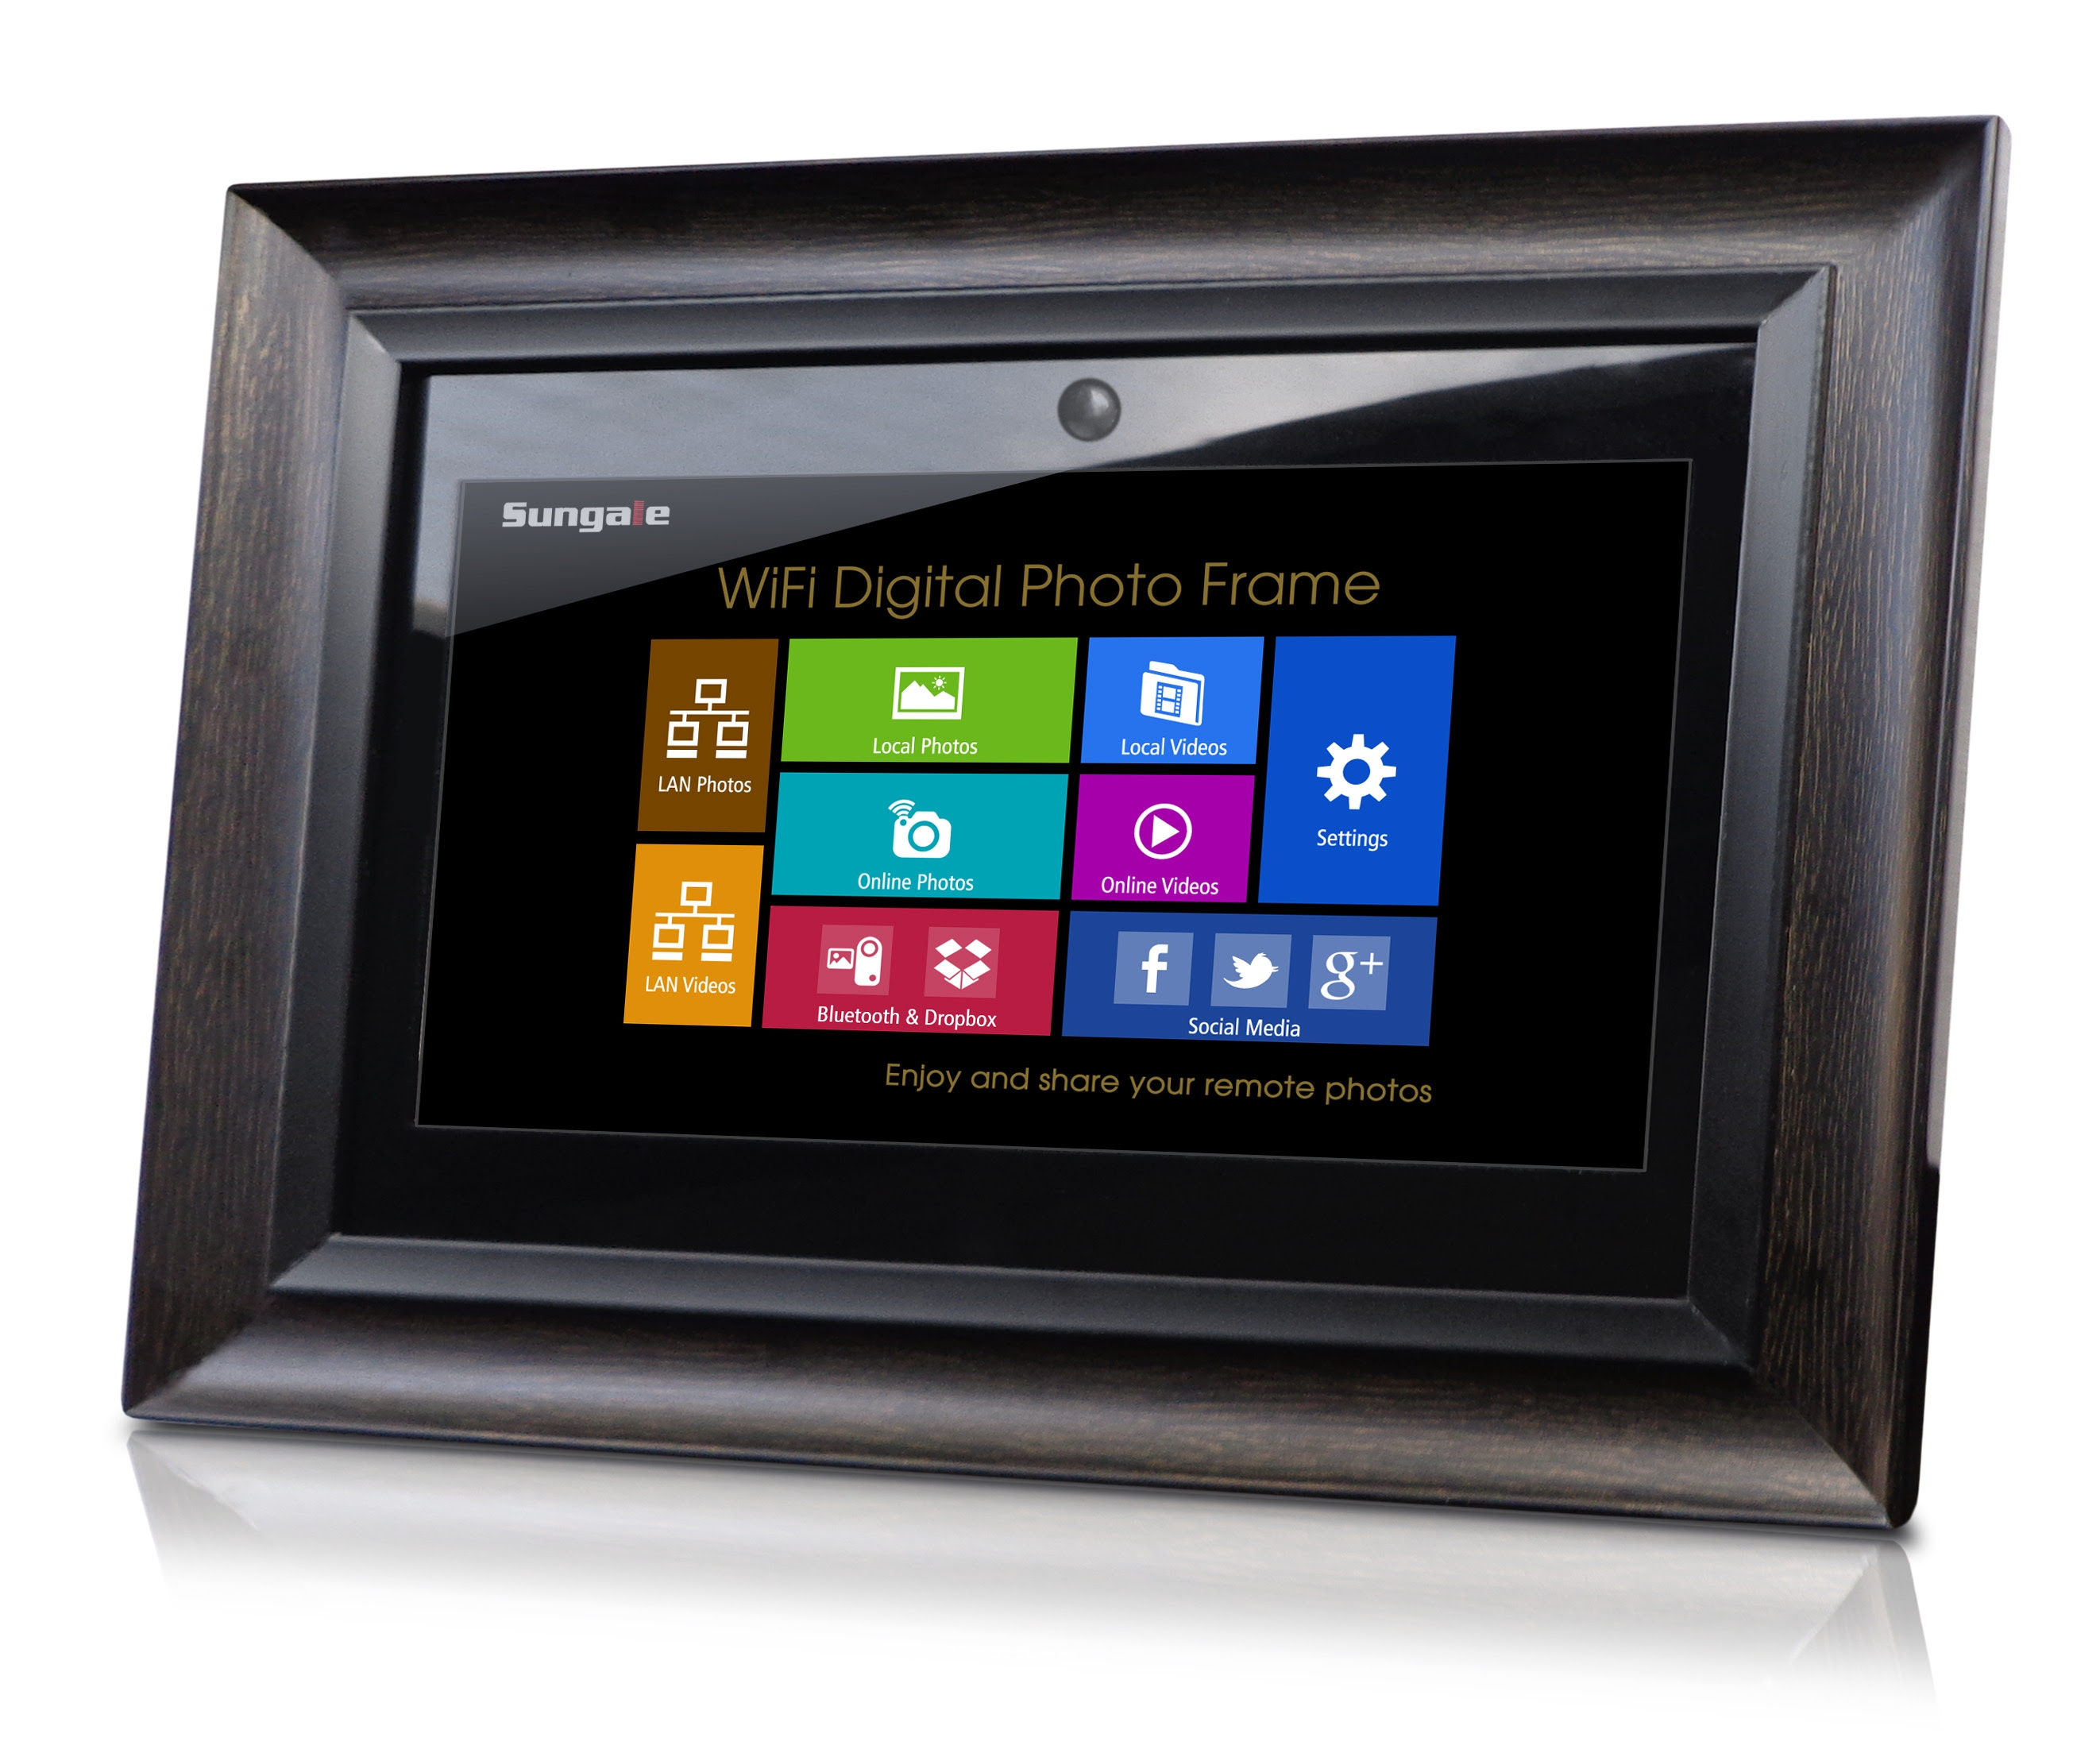 Upc 884945001465 Sungale 14 Wi Fi Digital Photo Frame With Motion